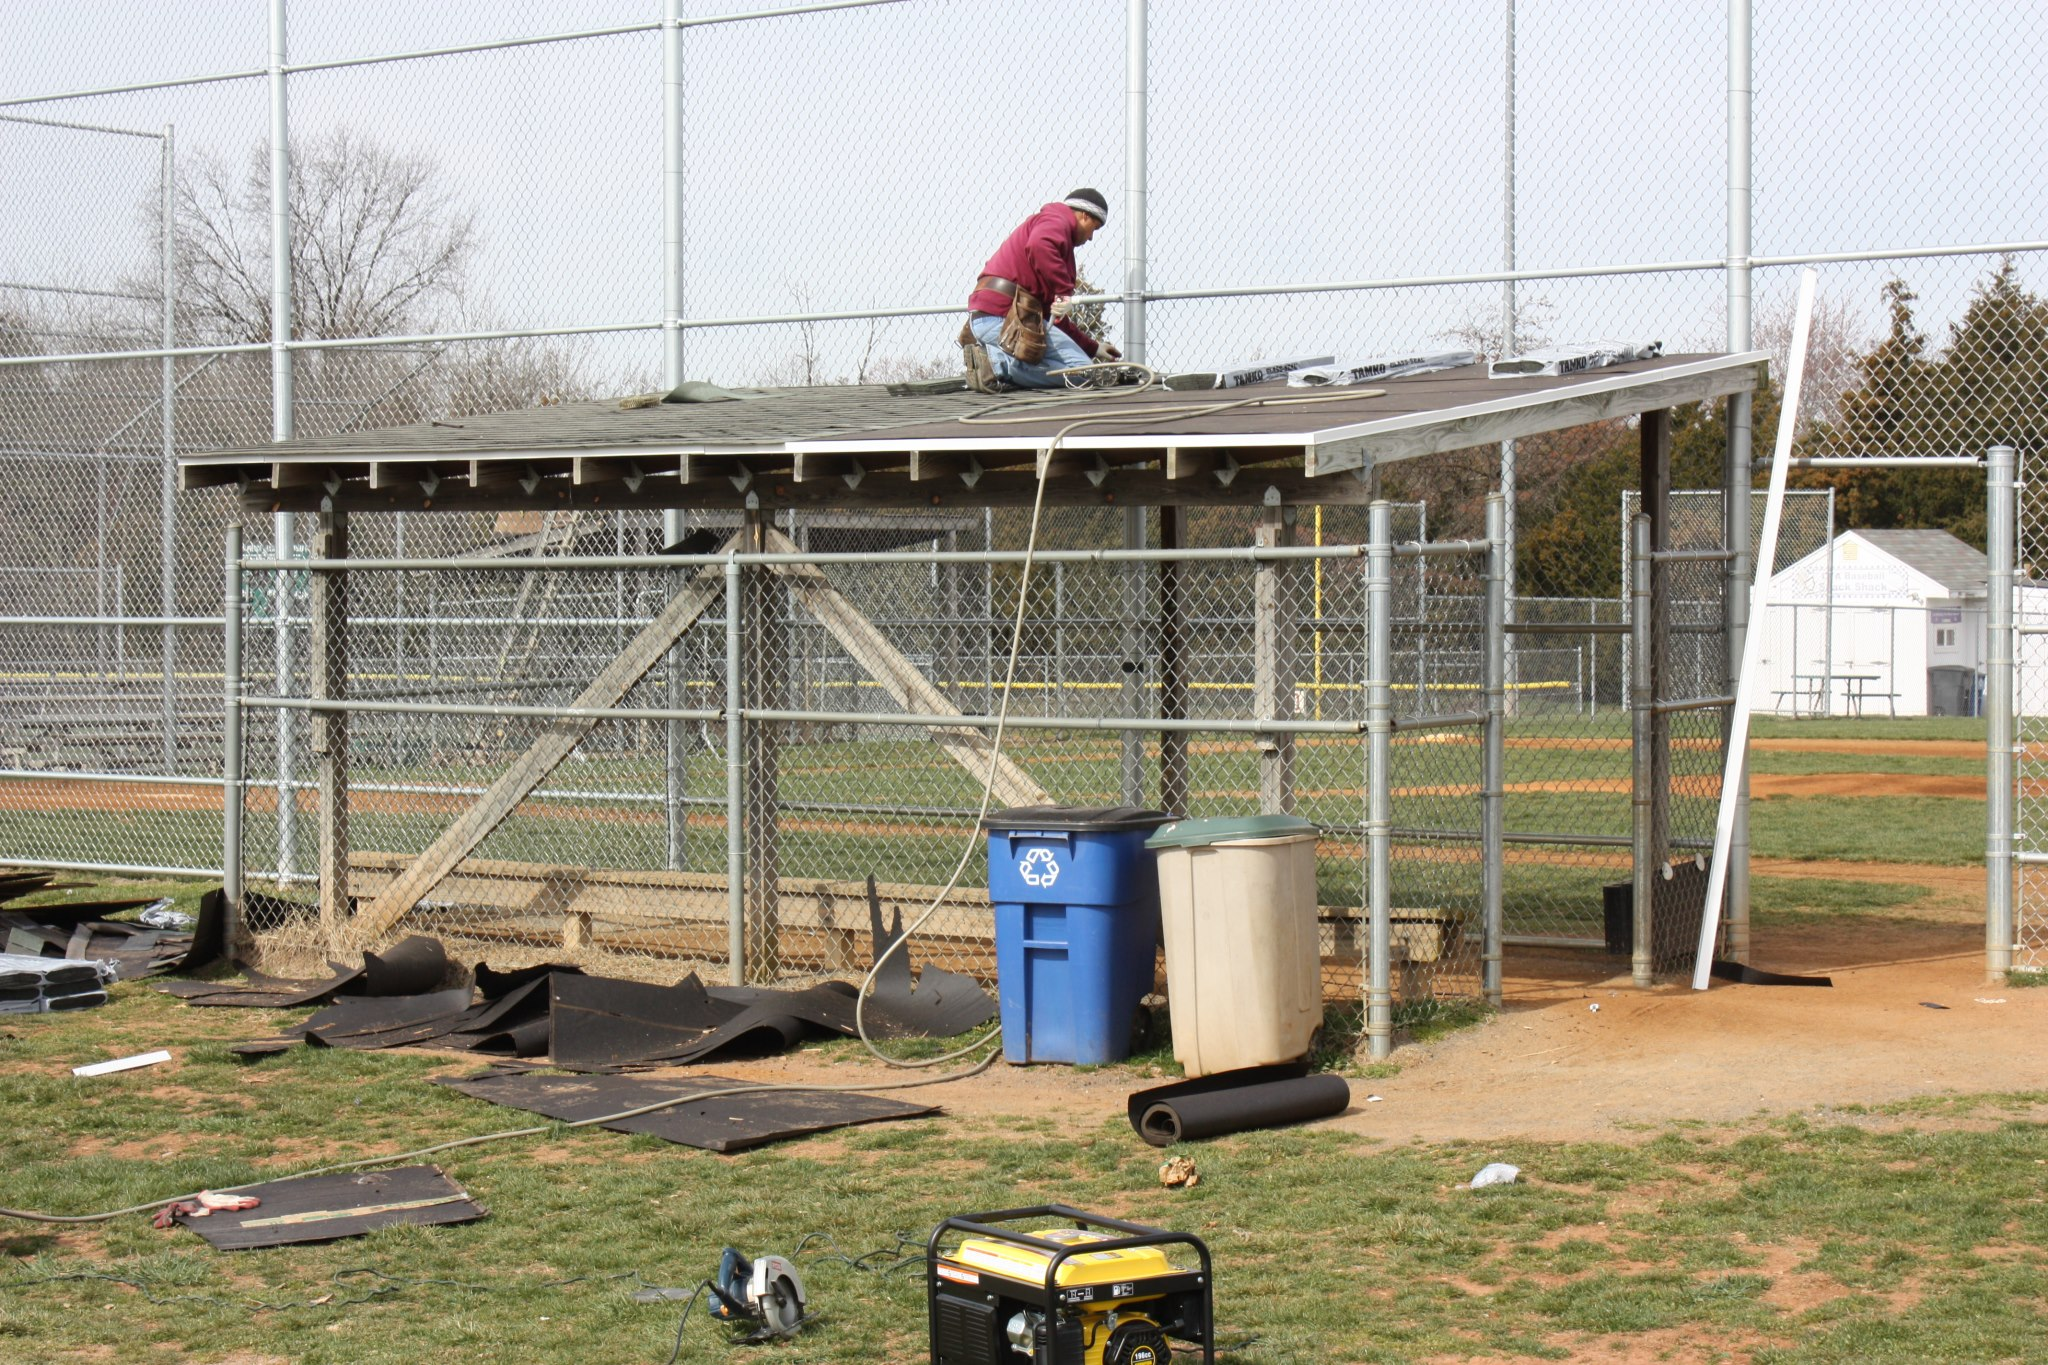 moss building  u0026 design remodels chantilly baseball dugouts